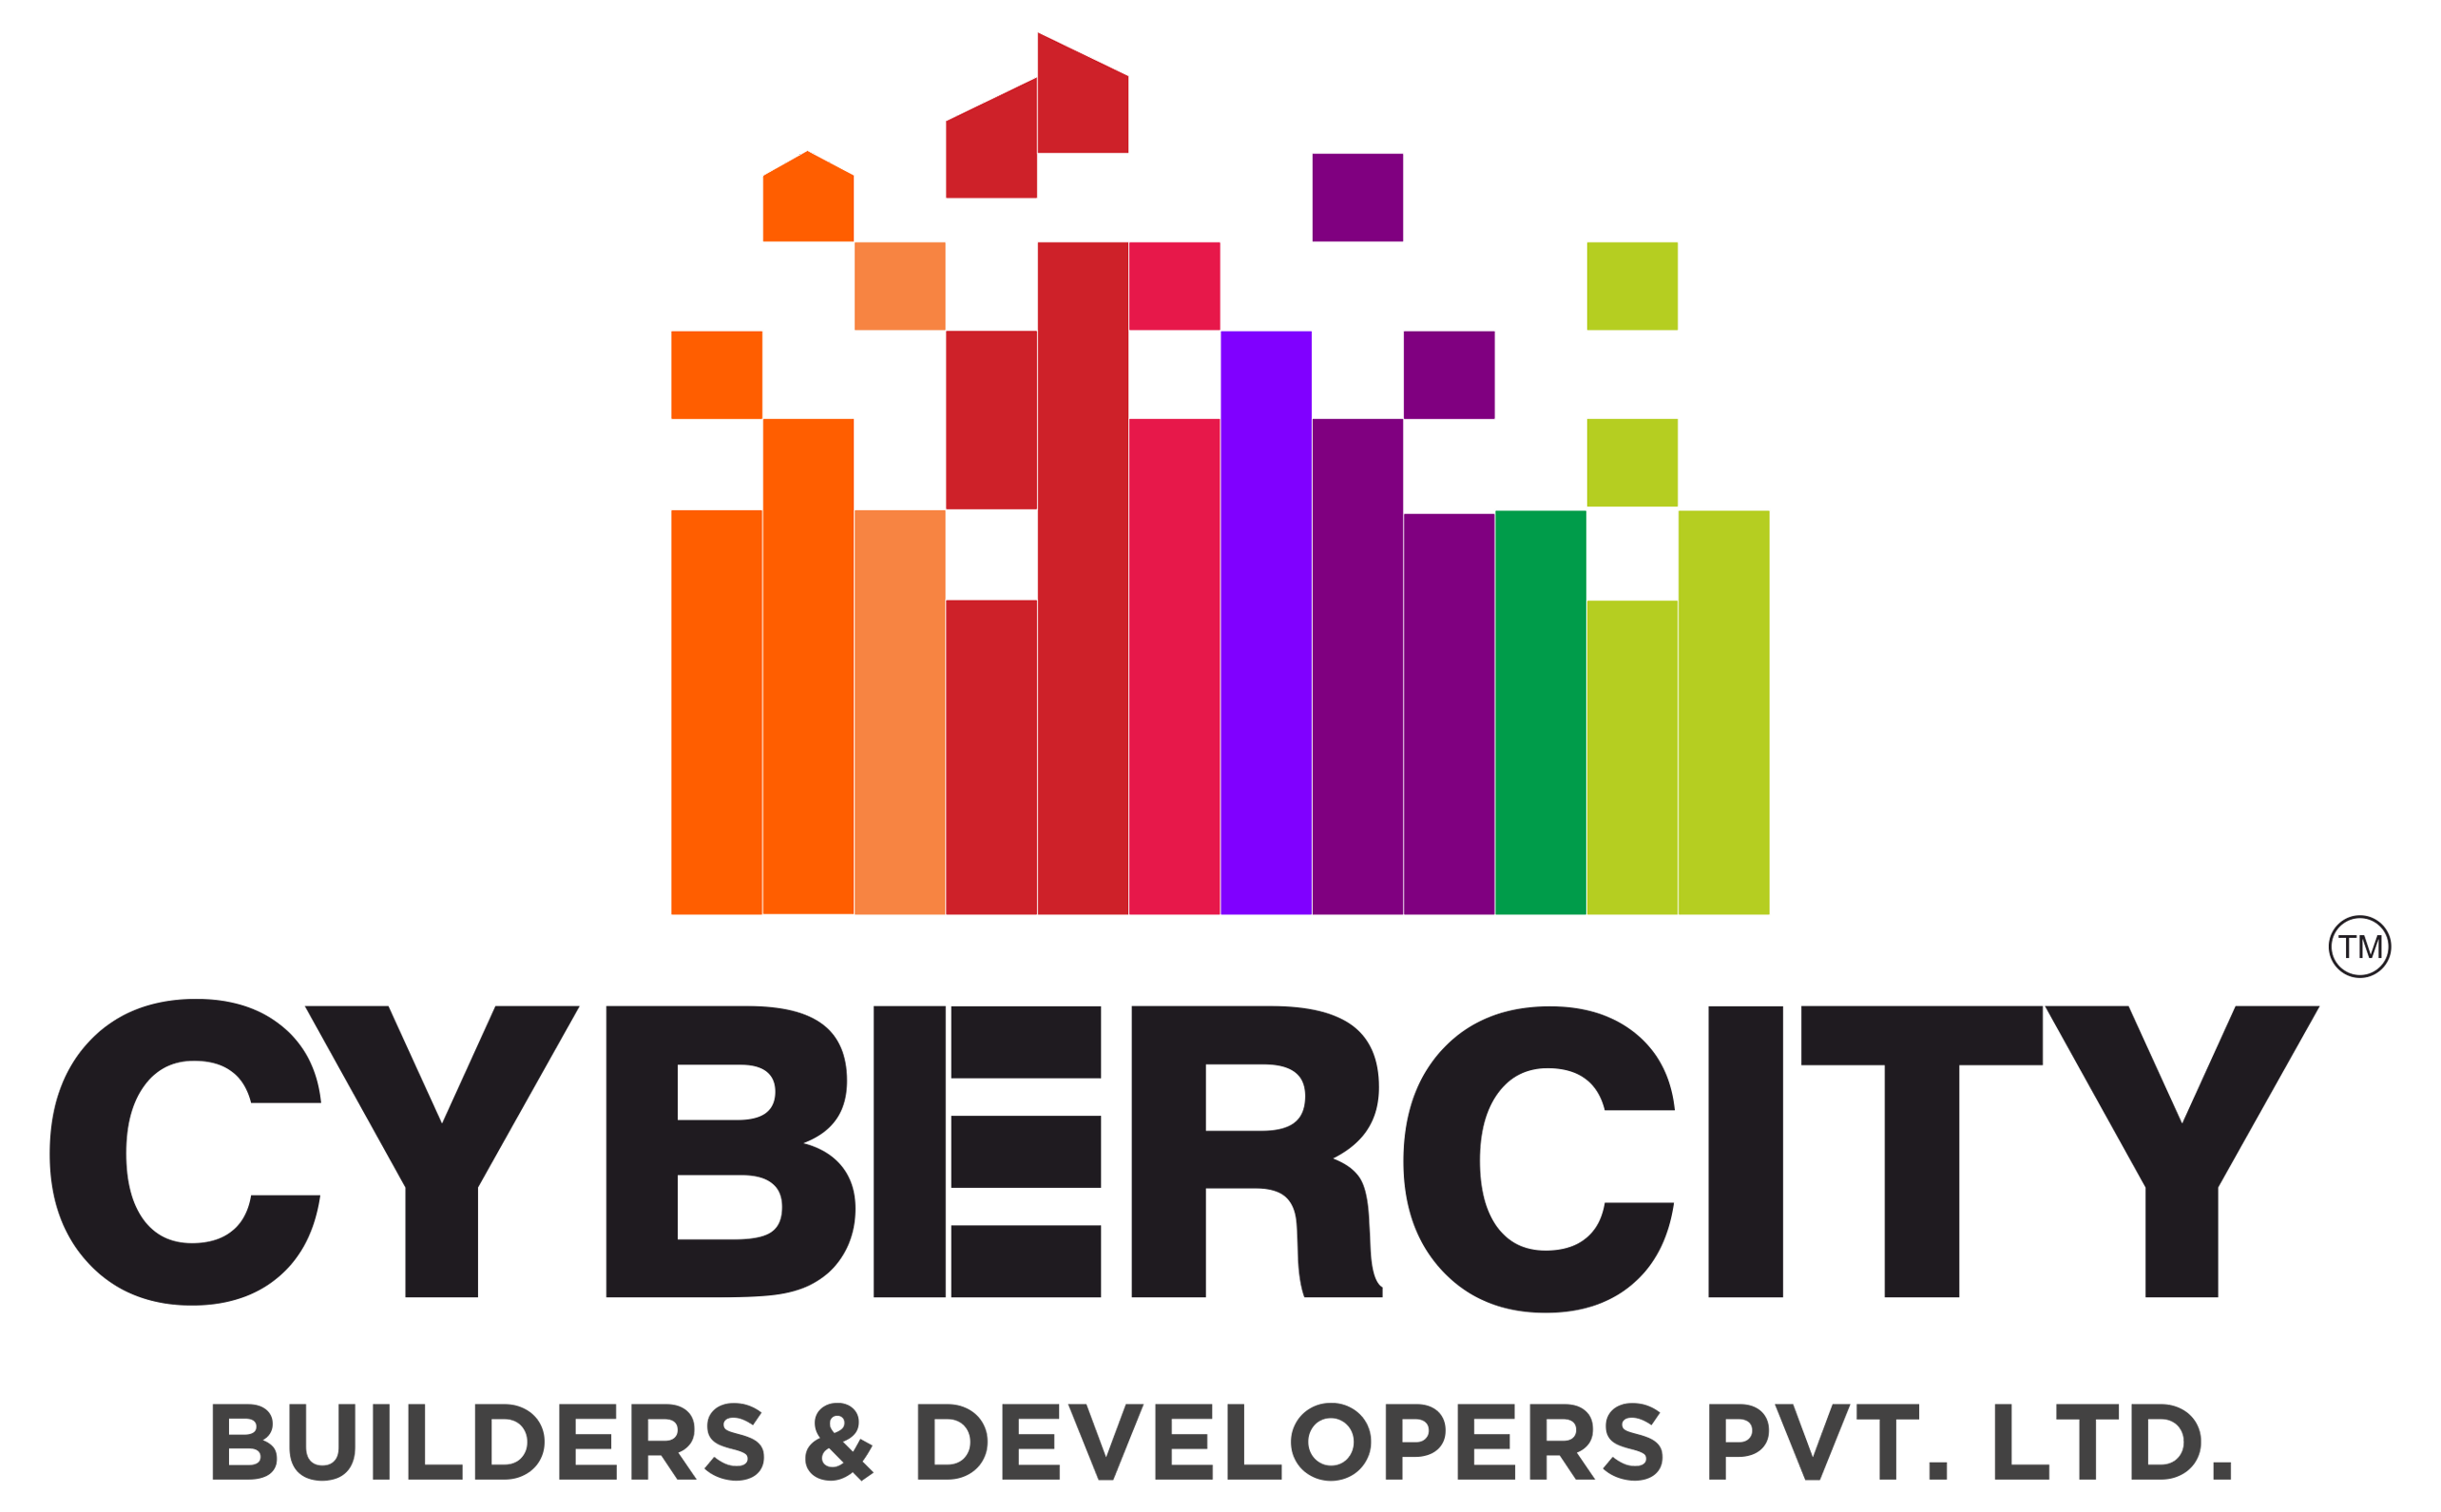 Cybercity Builders And Developers